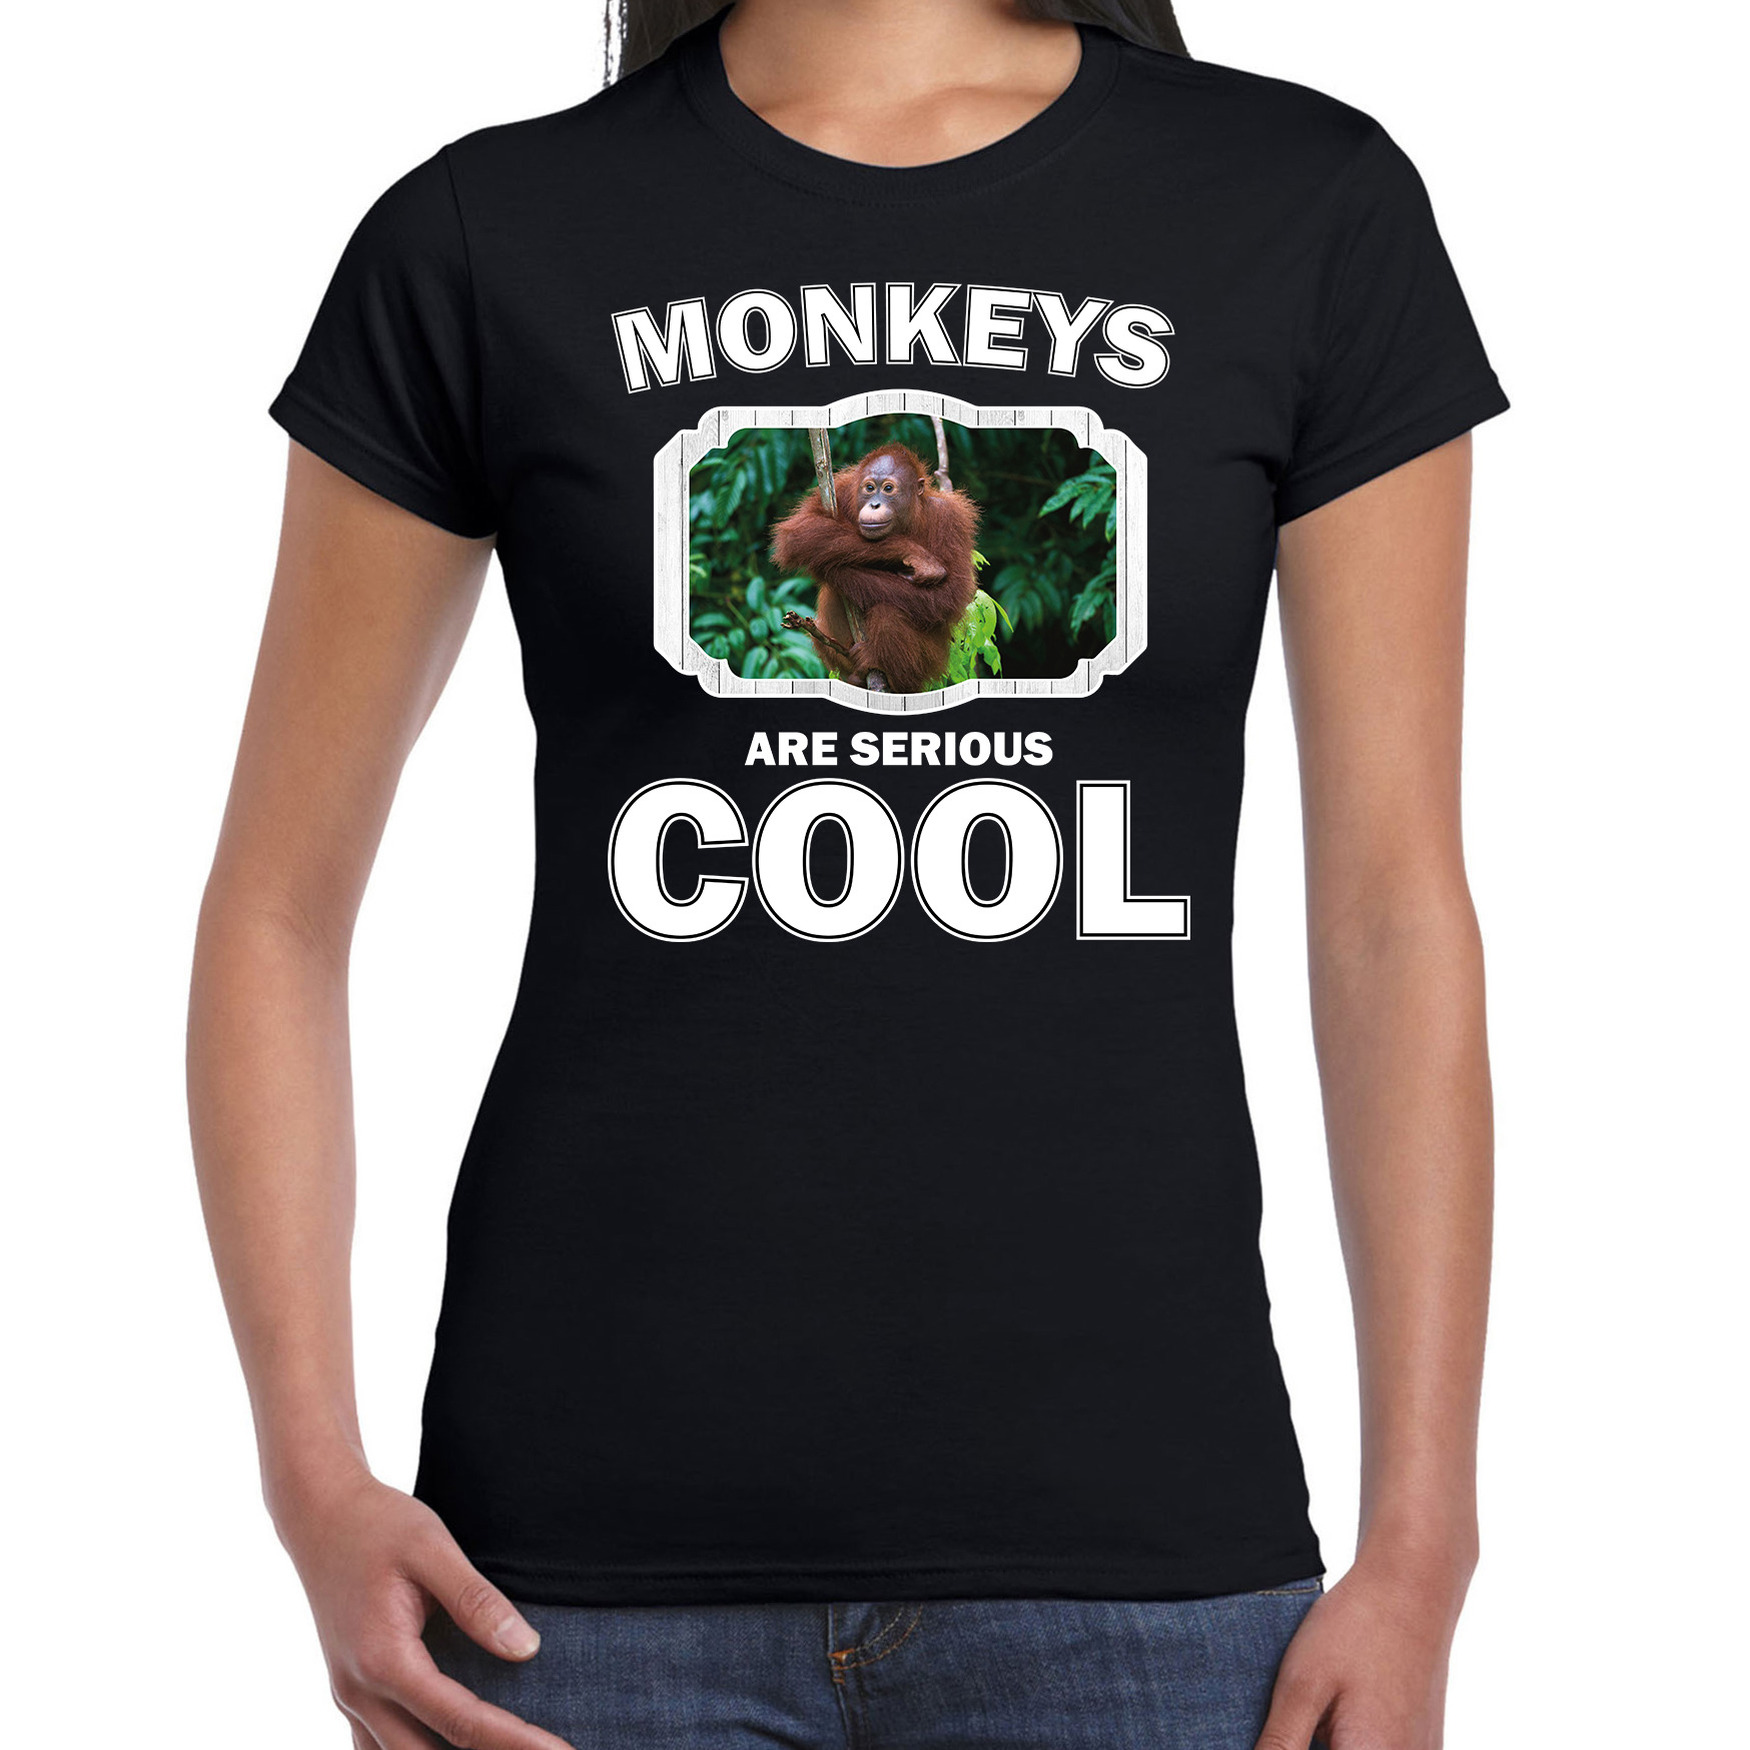 T-shirt monkeys are serious cool zwart dames - Apen/ orang oetan shirt